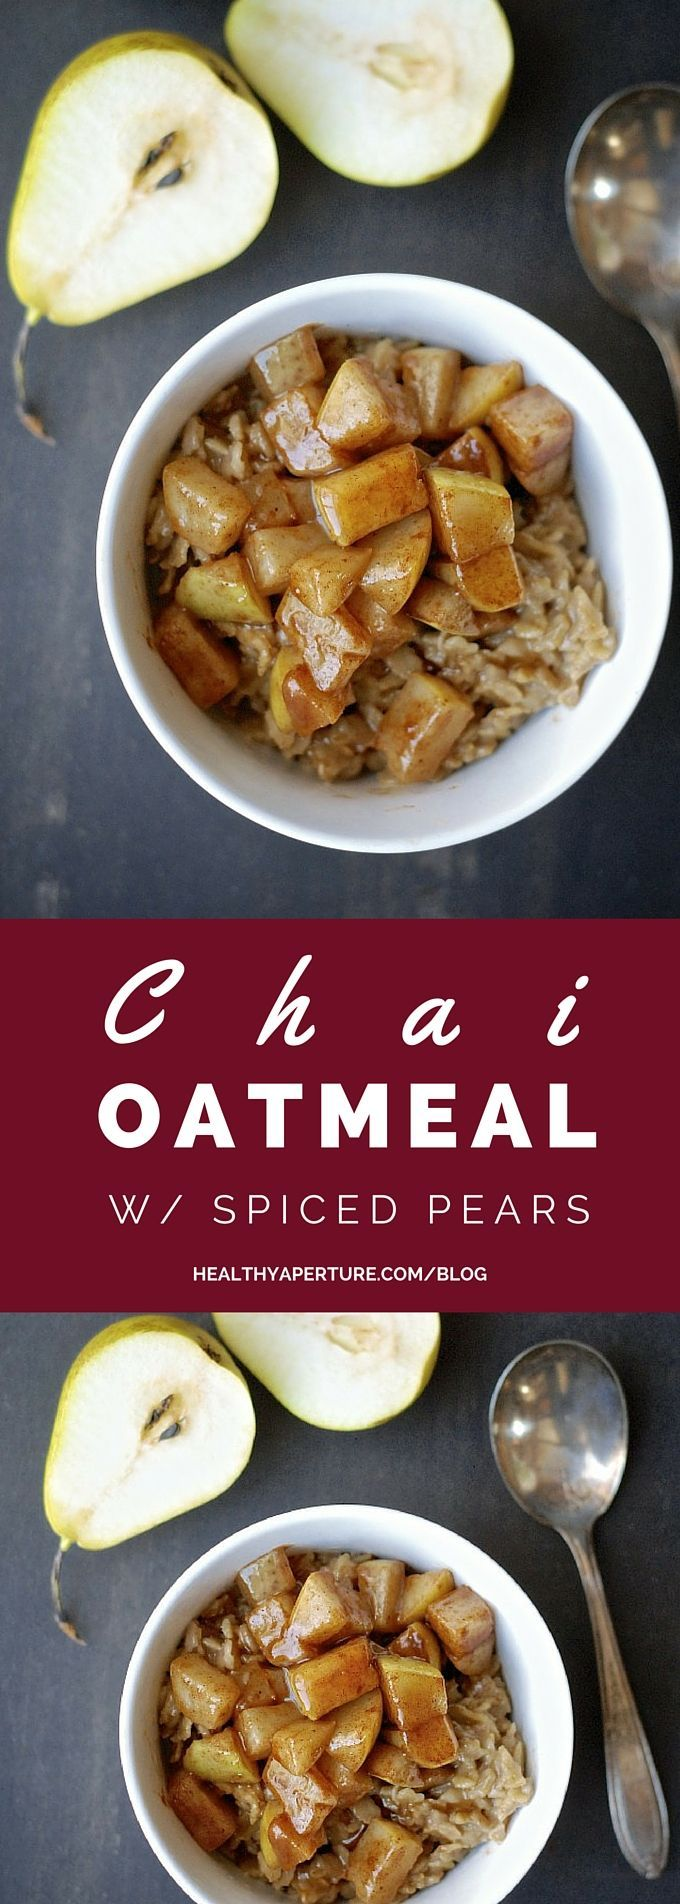 ... oats with this recipe for Chai Oatmeal with Spiced & Buttered Pears